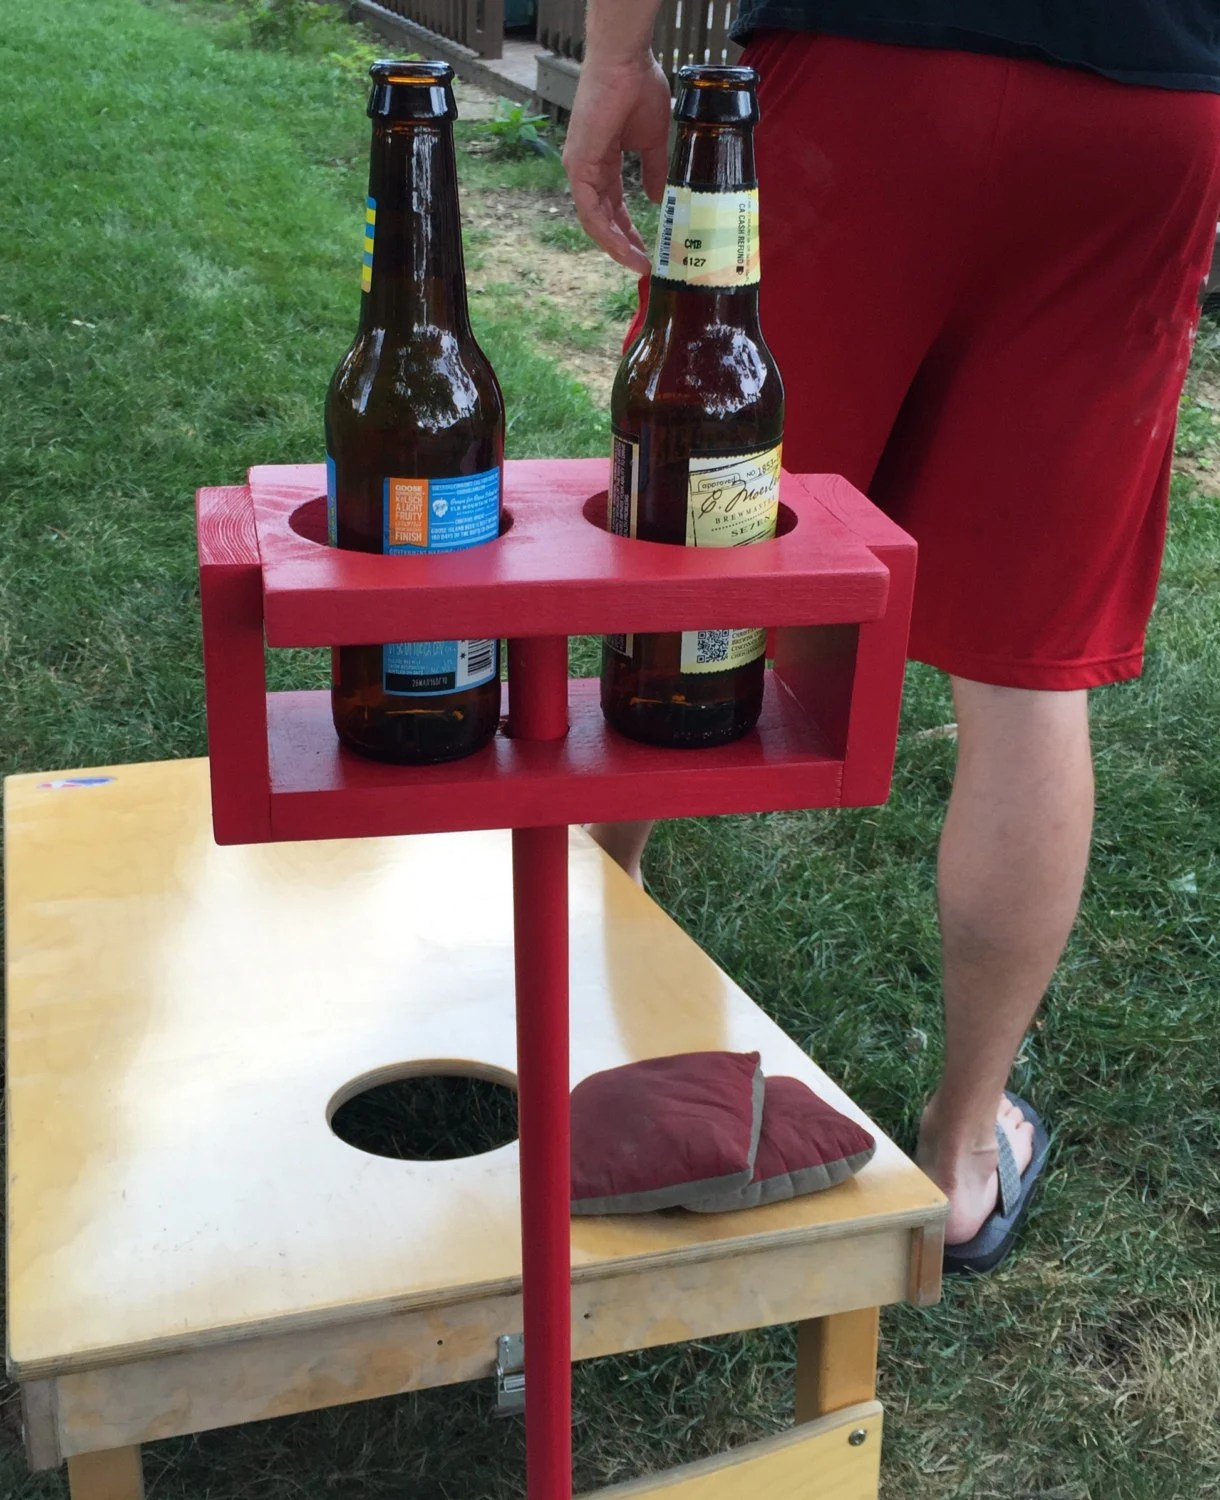 Yard Drink Holders Cornhole Cup Holder Games By Newlovedecor